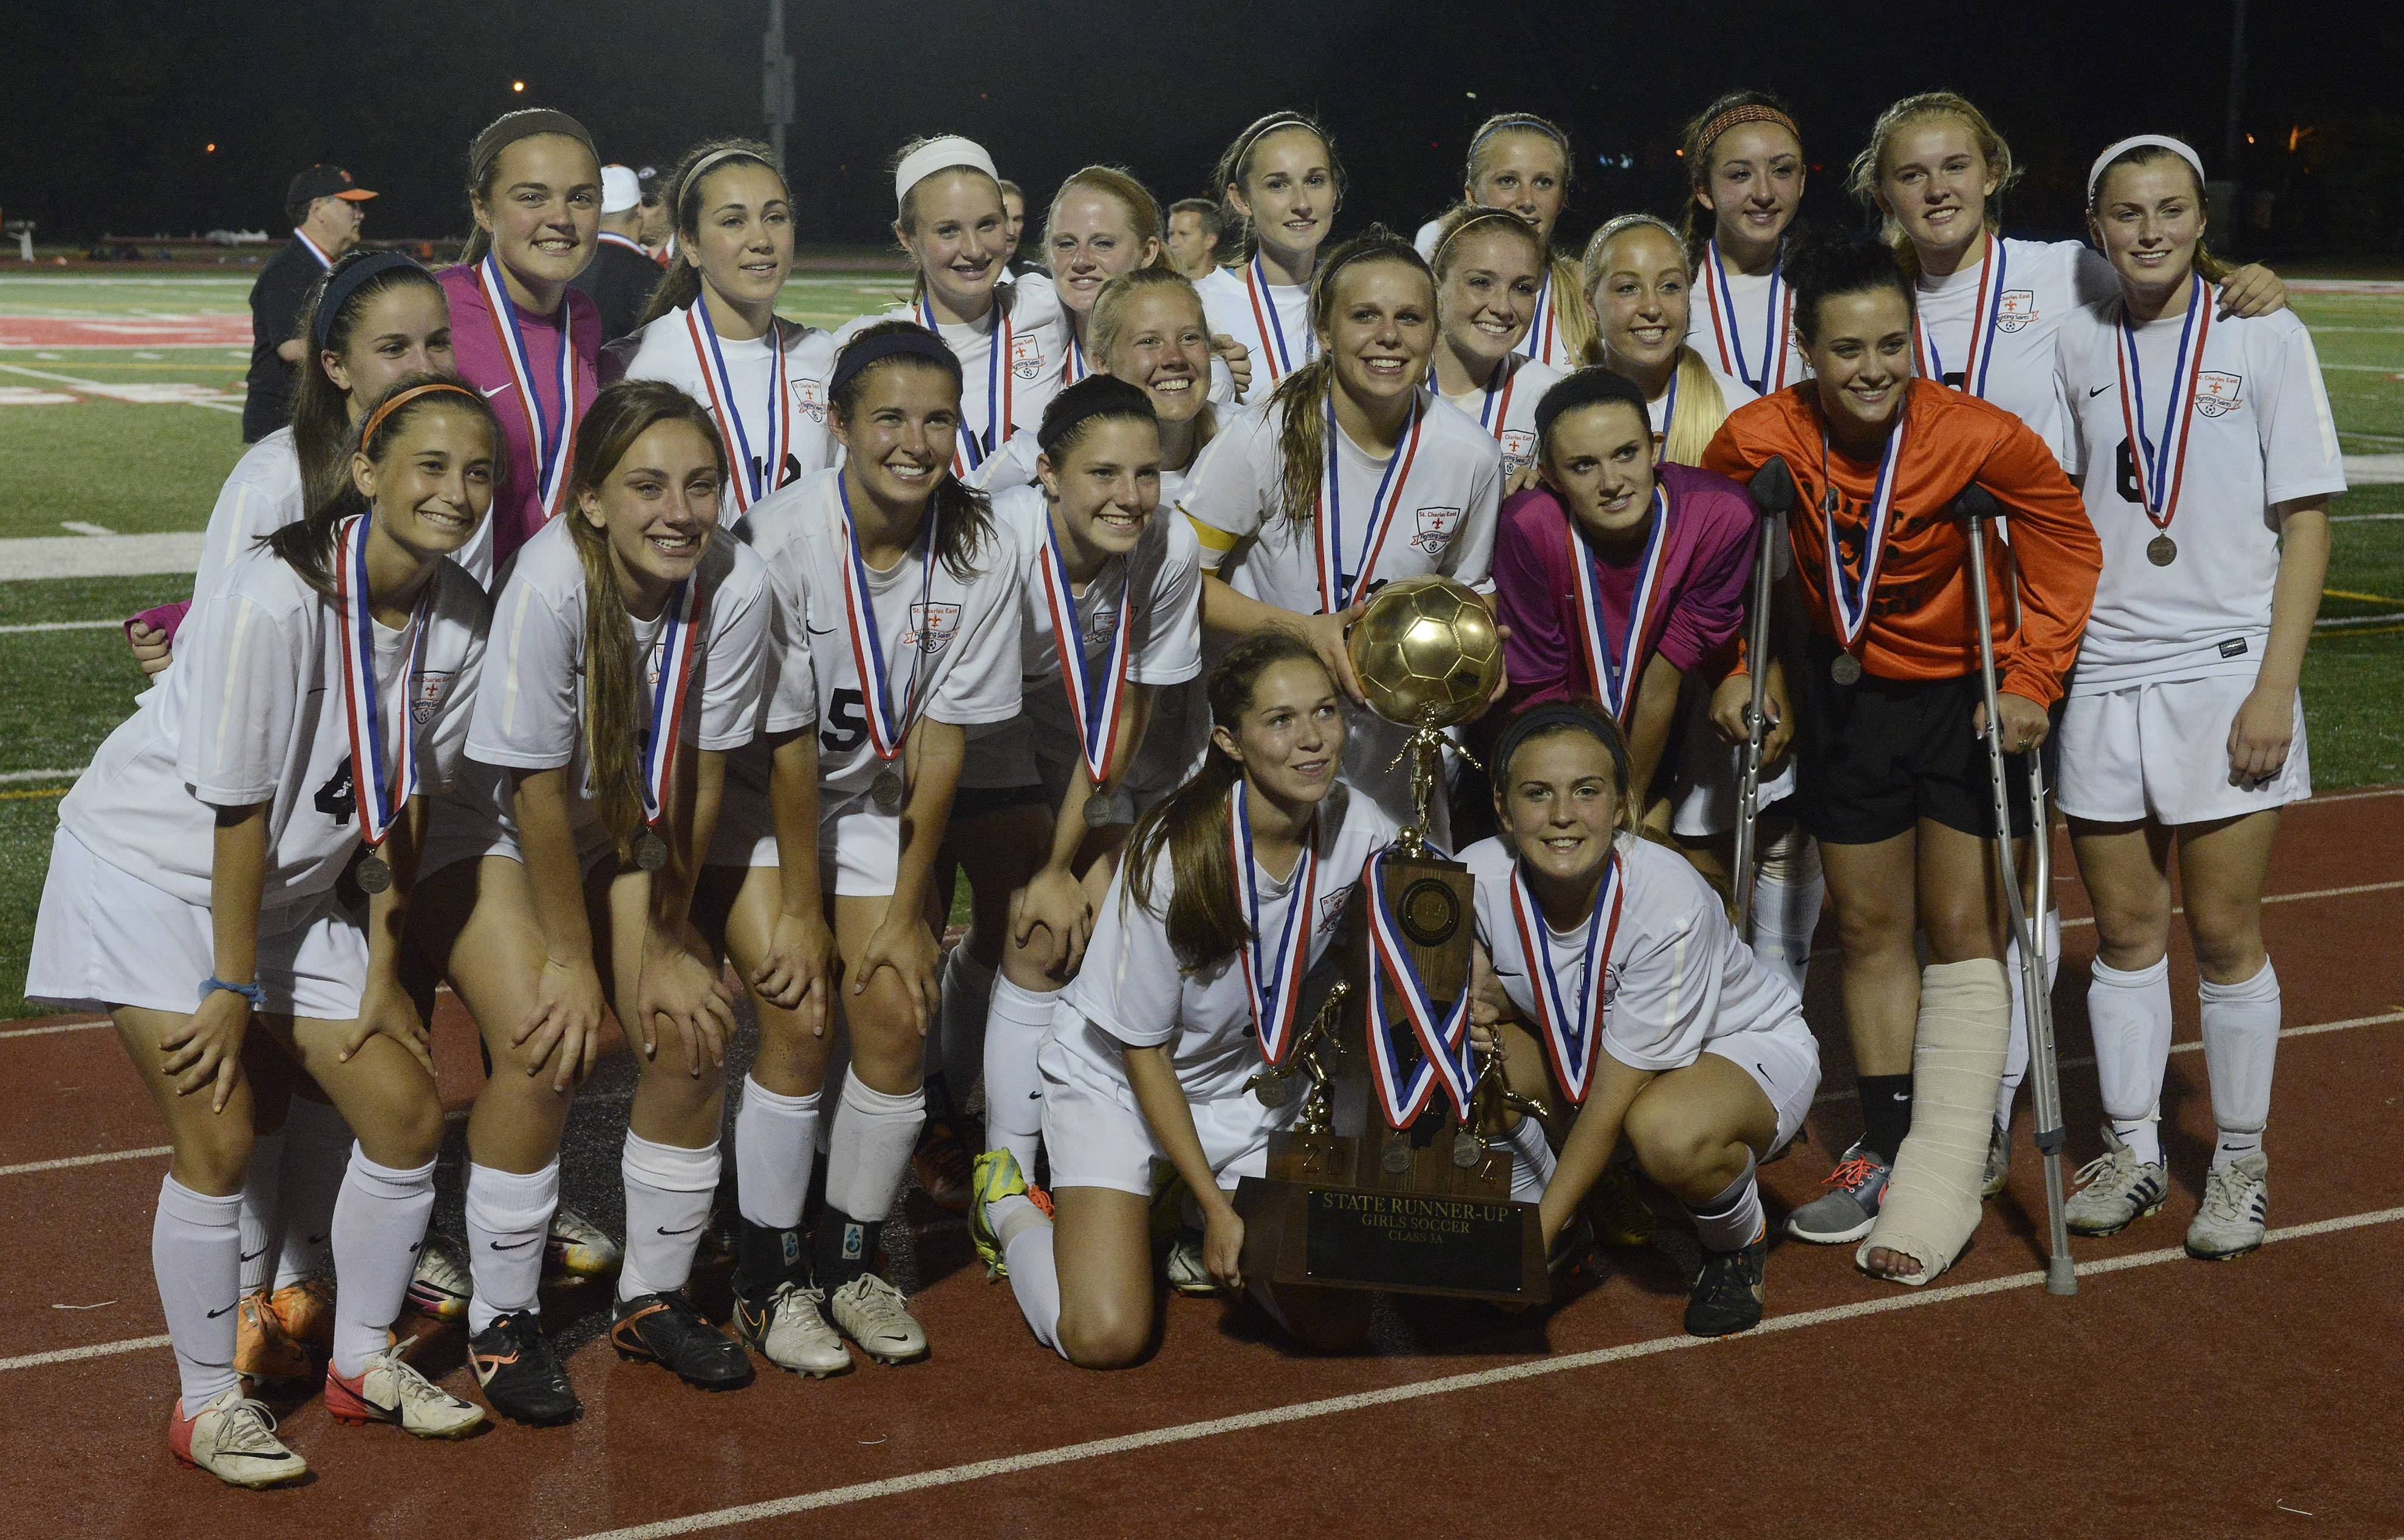 St. Charles East players pose with their second-place trophy following their 1-0 loss to New Trier during the girls soccer Class 3A state final at North Central College in Naperville Saturday.